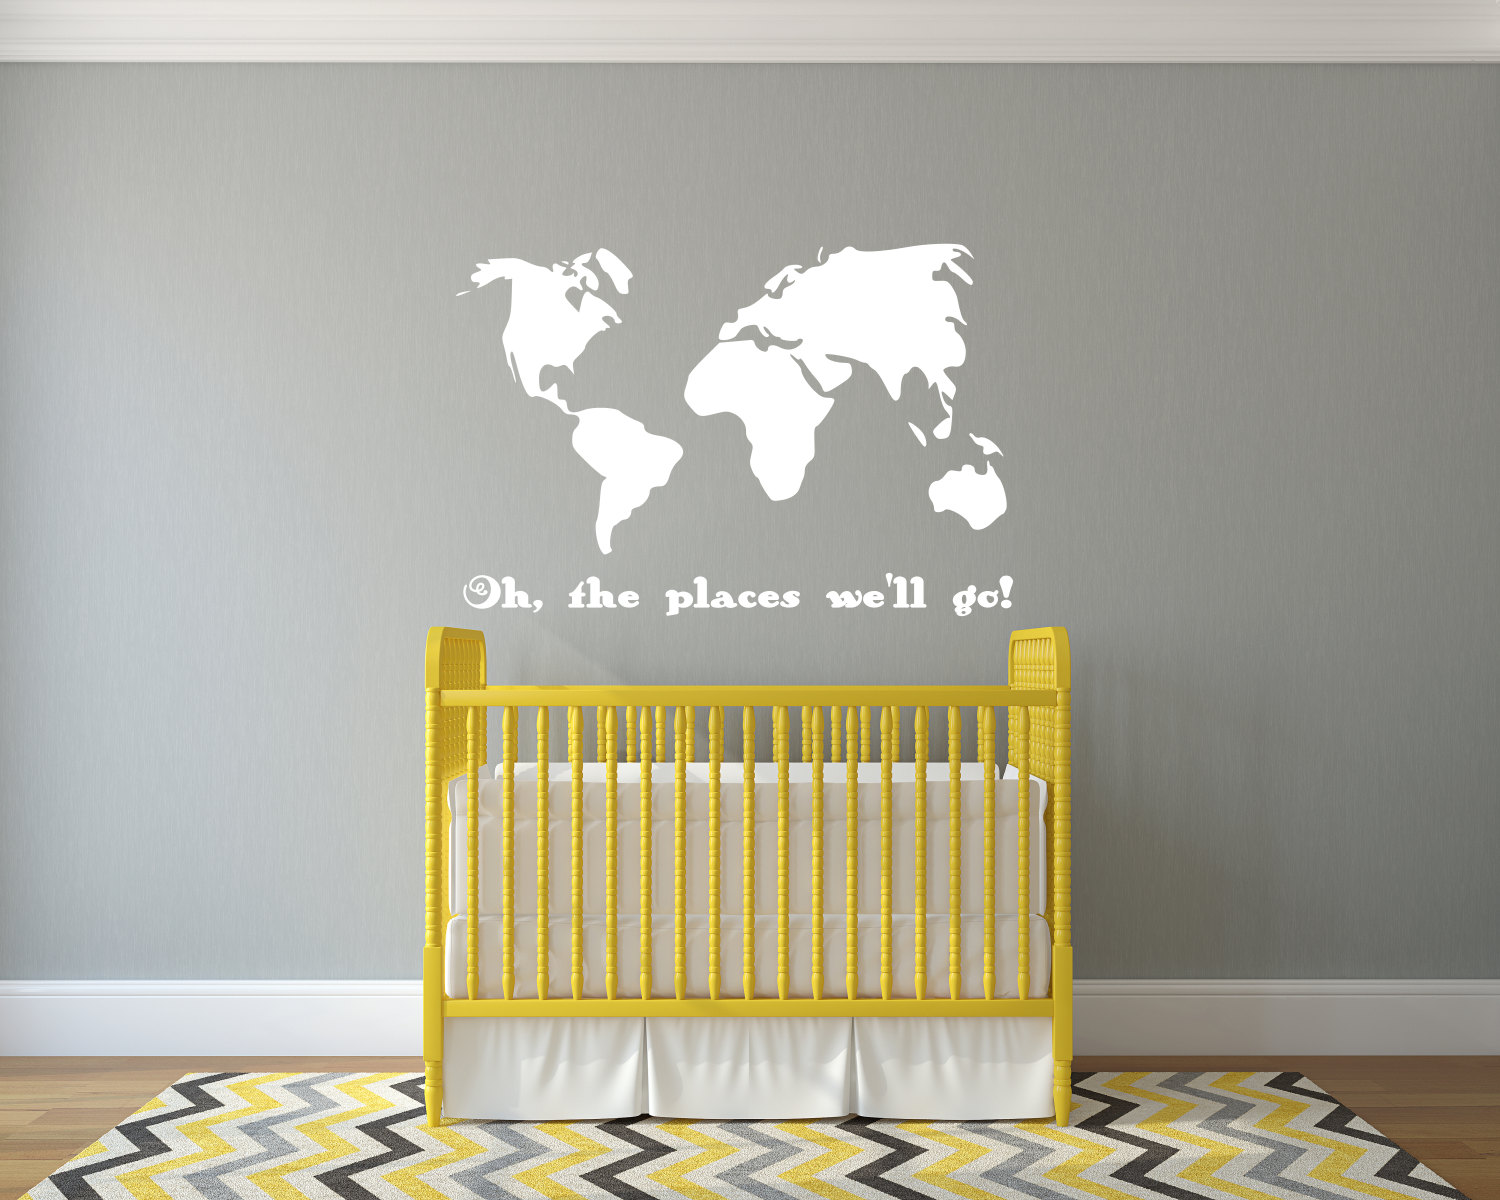 Oh the places well go decal, oh the places youll go, oh the places ...